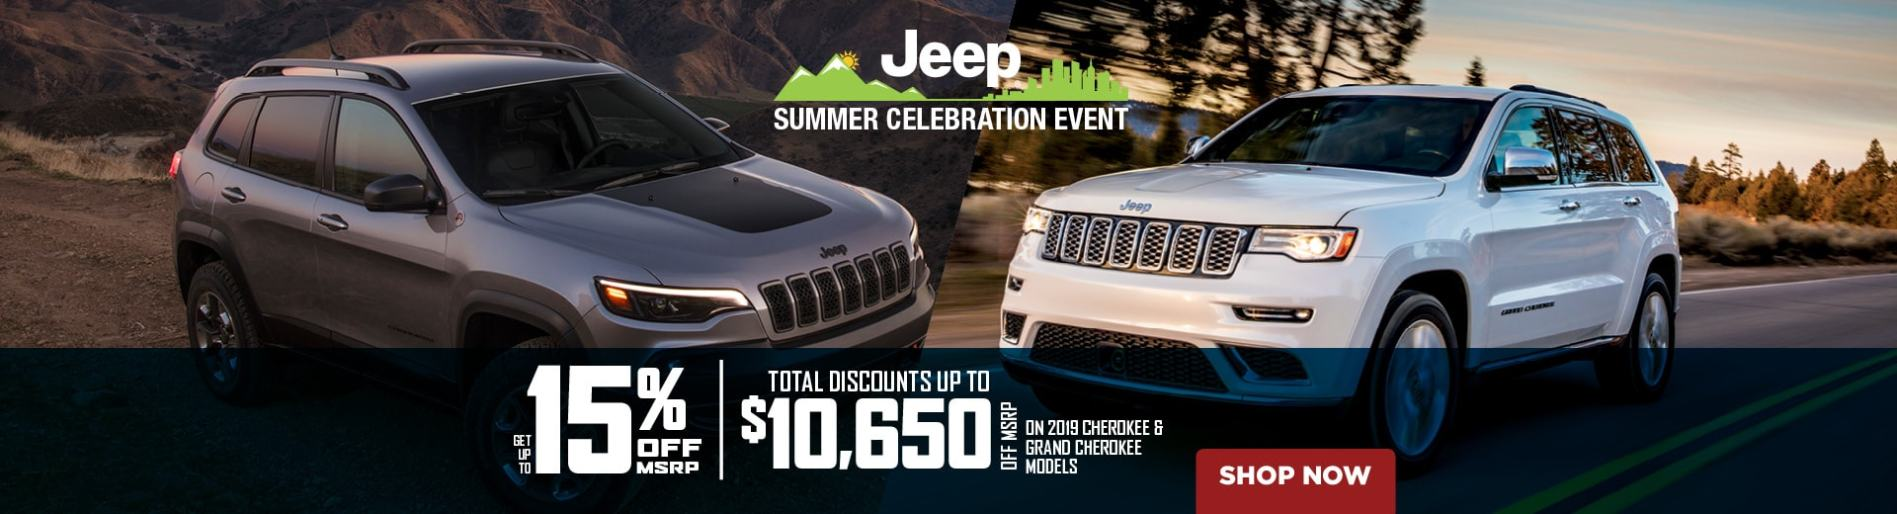 chrysler dodge jeep ram moncton nb cars trucks and suvs for sale at moncton chrysler jeep dodge [ 1898 x 514 Pixel ]